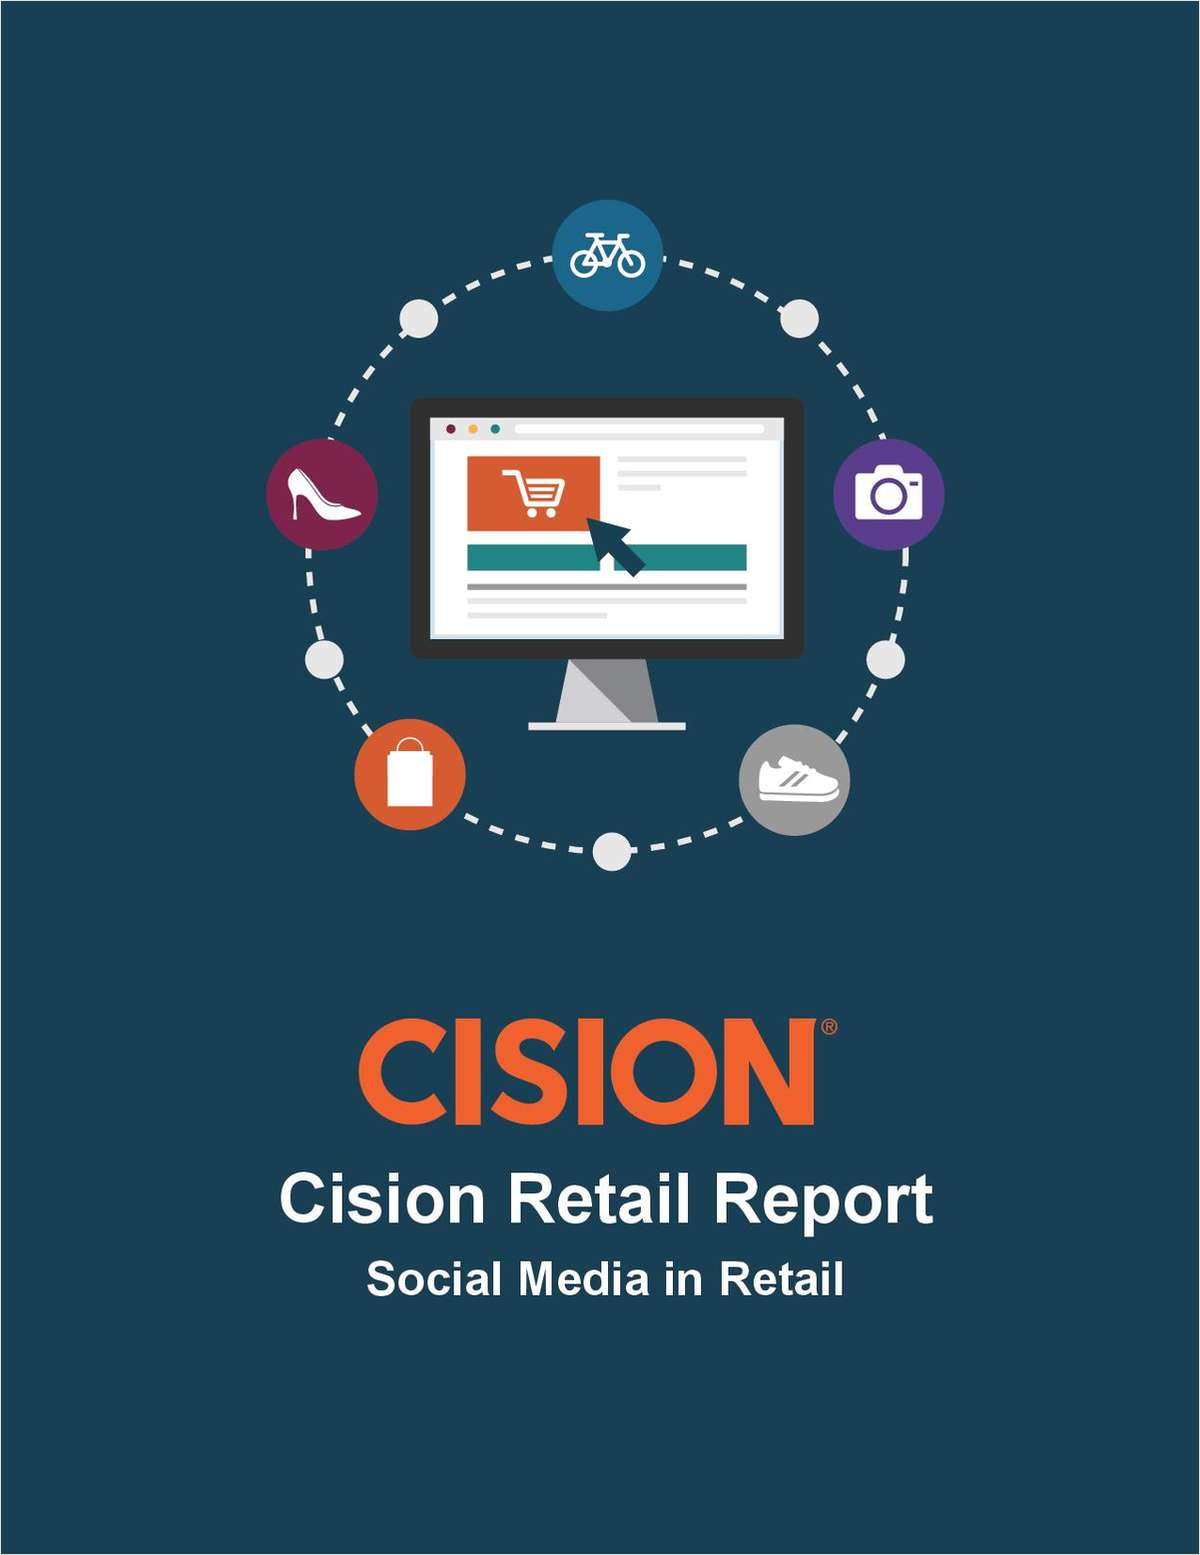 Cision Retail Report: Generating ROI from Social Media